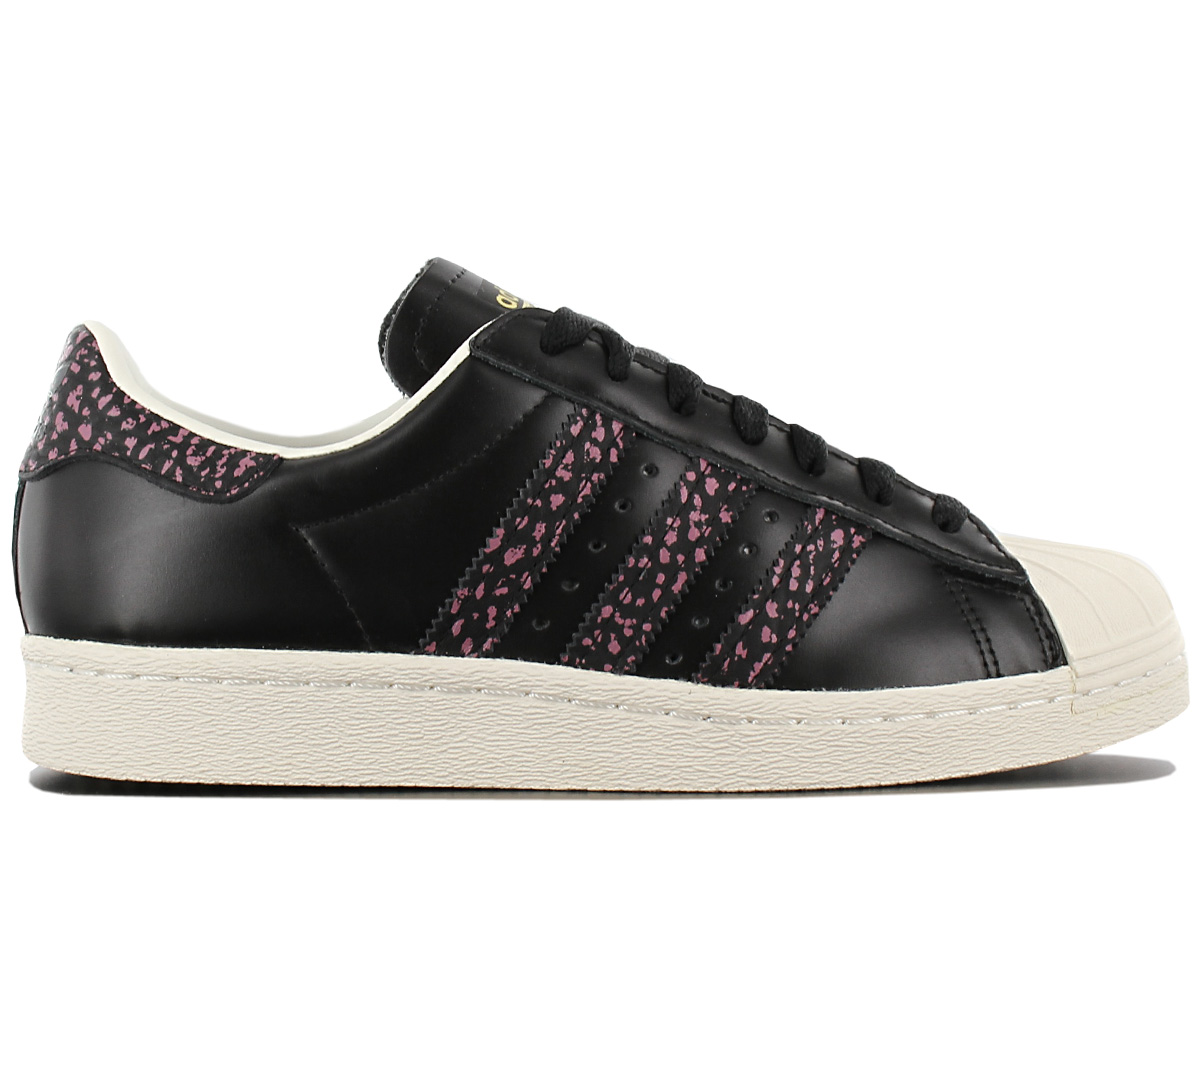 Details about Adidas Originals Superstar 80s Women's Sneaker Fashion Shoe Black Leather S75846